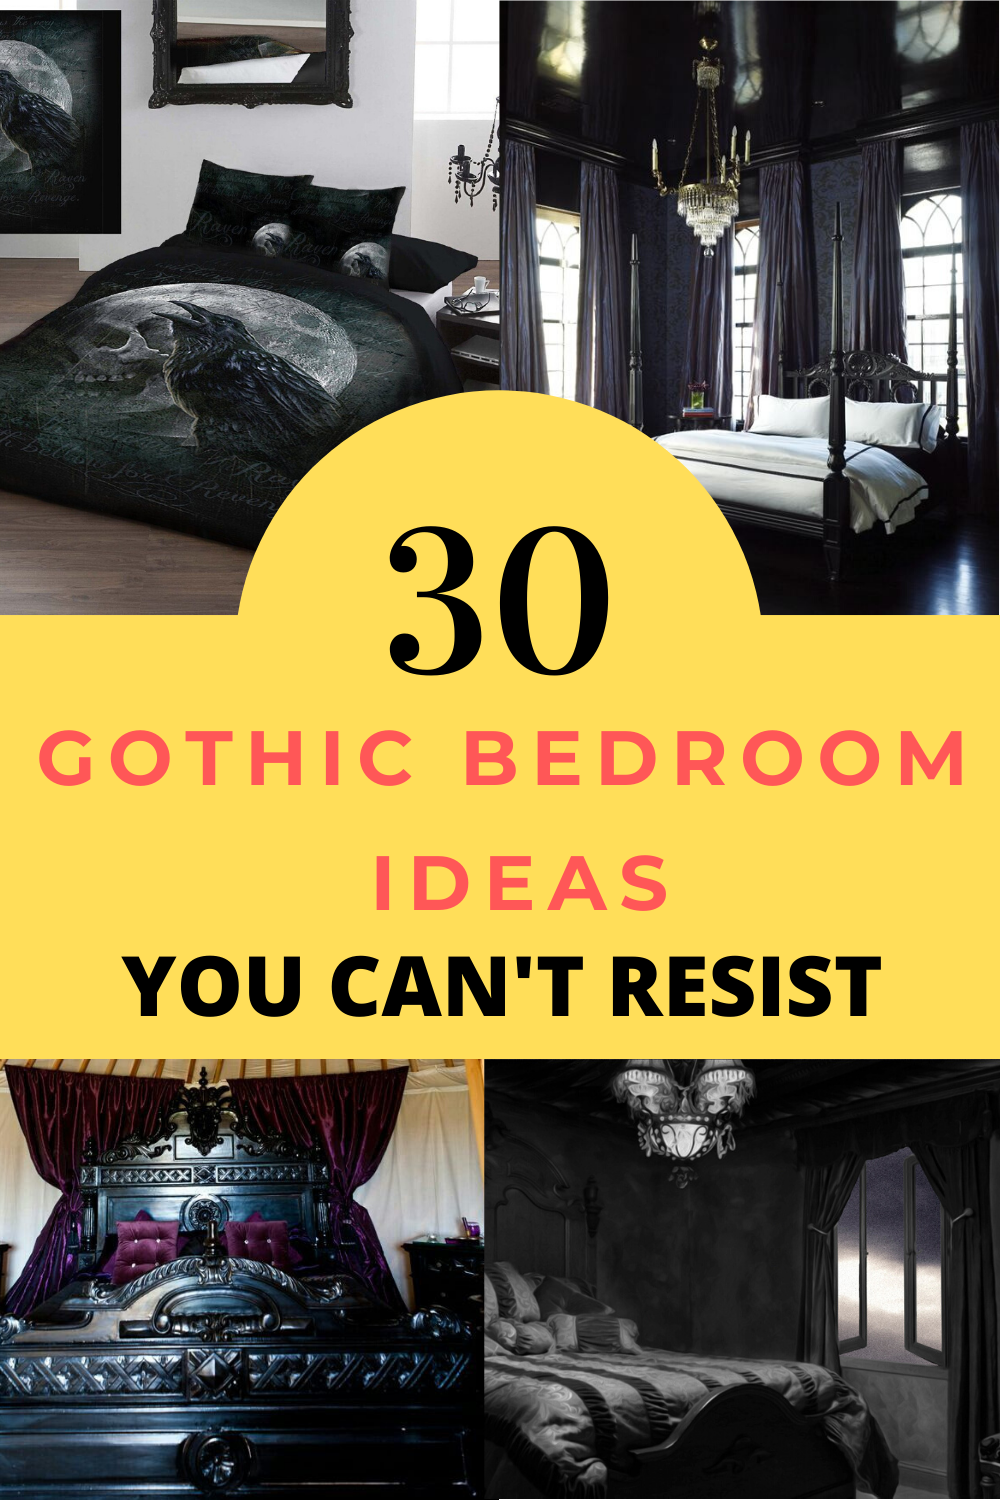 Gothic Bedroom Ideas 40 Shabby Design How To Decorate Gothic Bedroom Wall Decor Bedroom Gothic